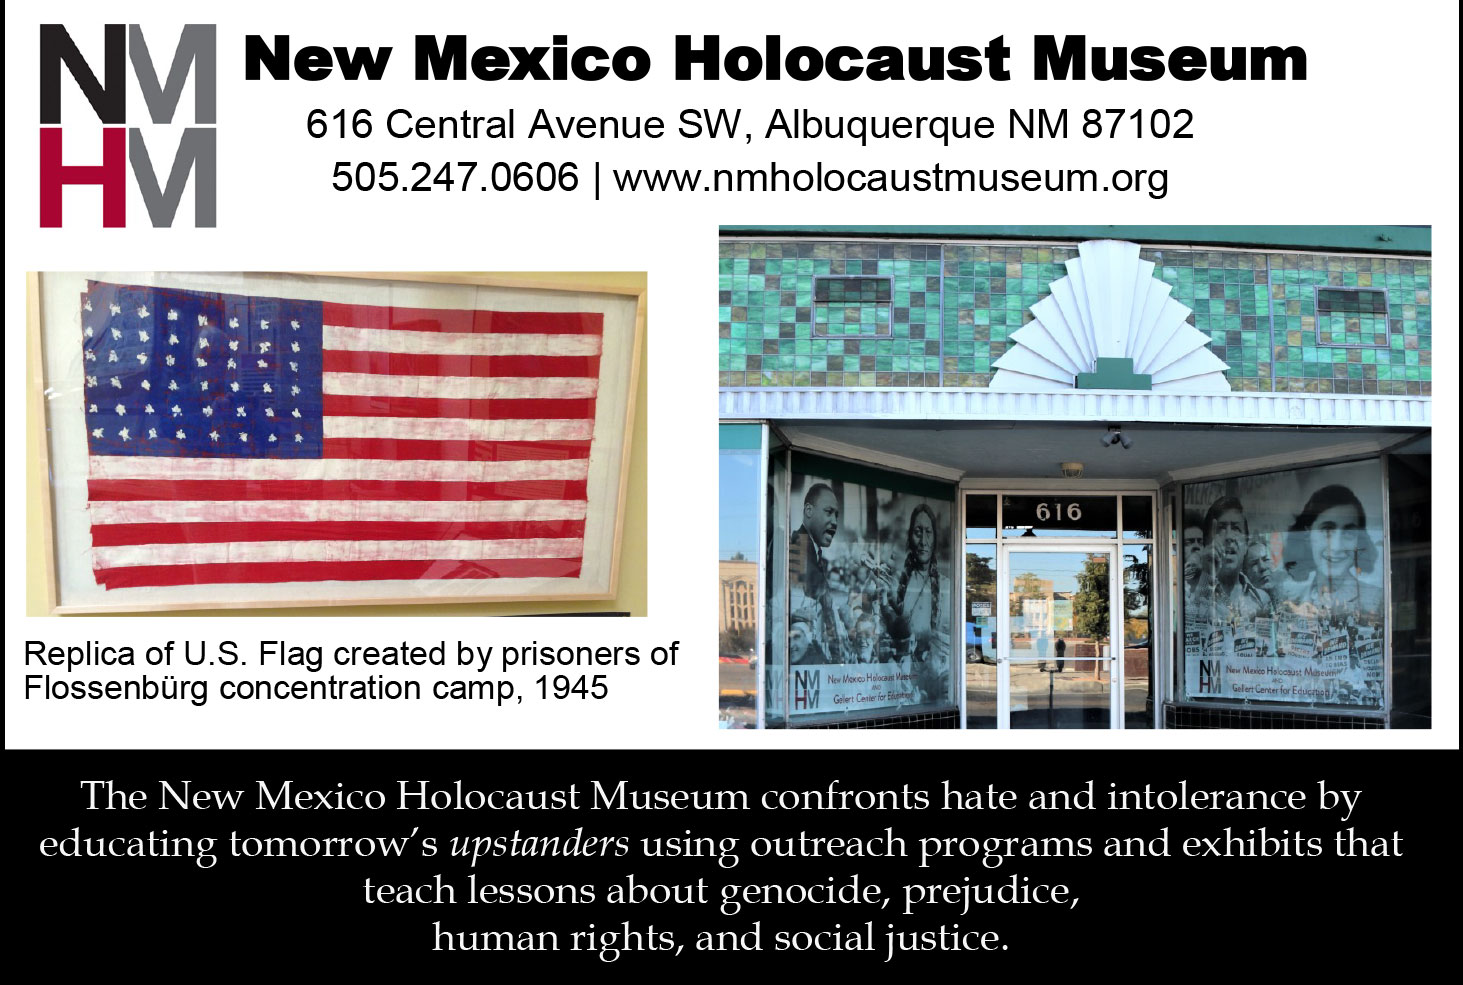 New Mexico Holocaust and Intolerance Museum